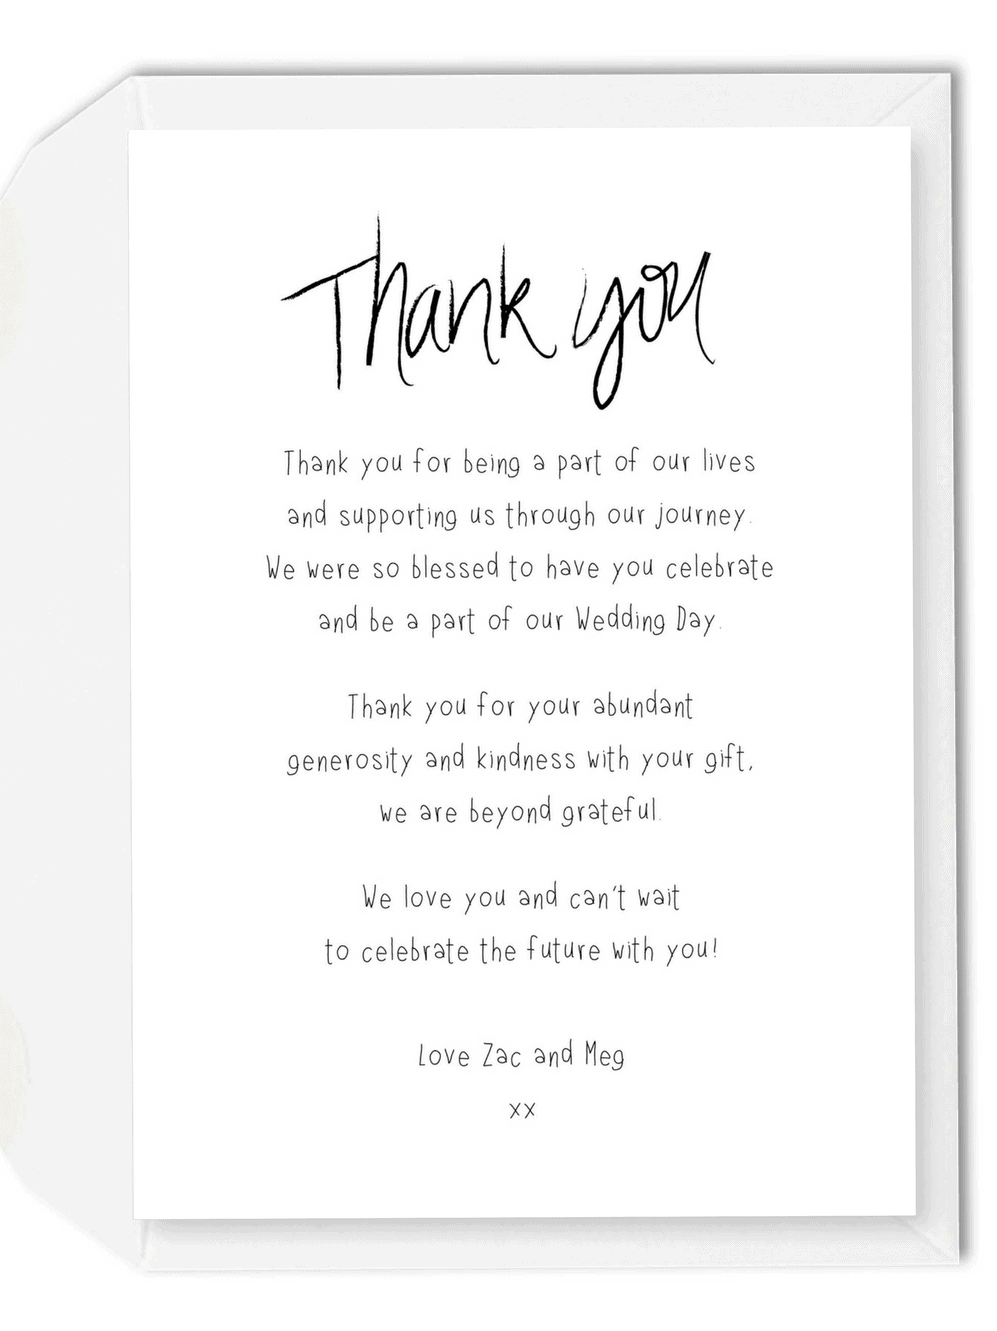 5 Wording Ideas for Your Wedding Thank You Cards For the Love of – Thank You Card Examples Wedding